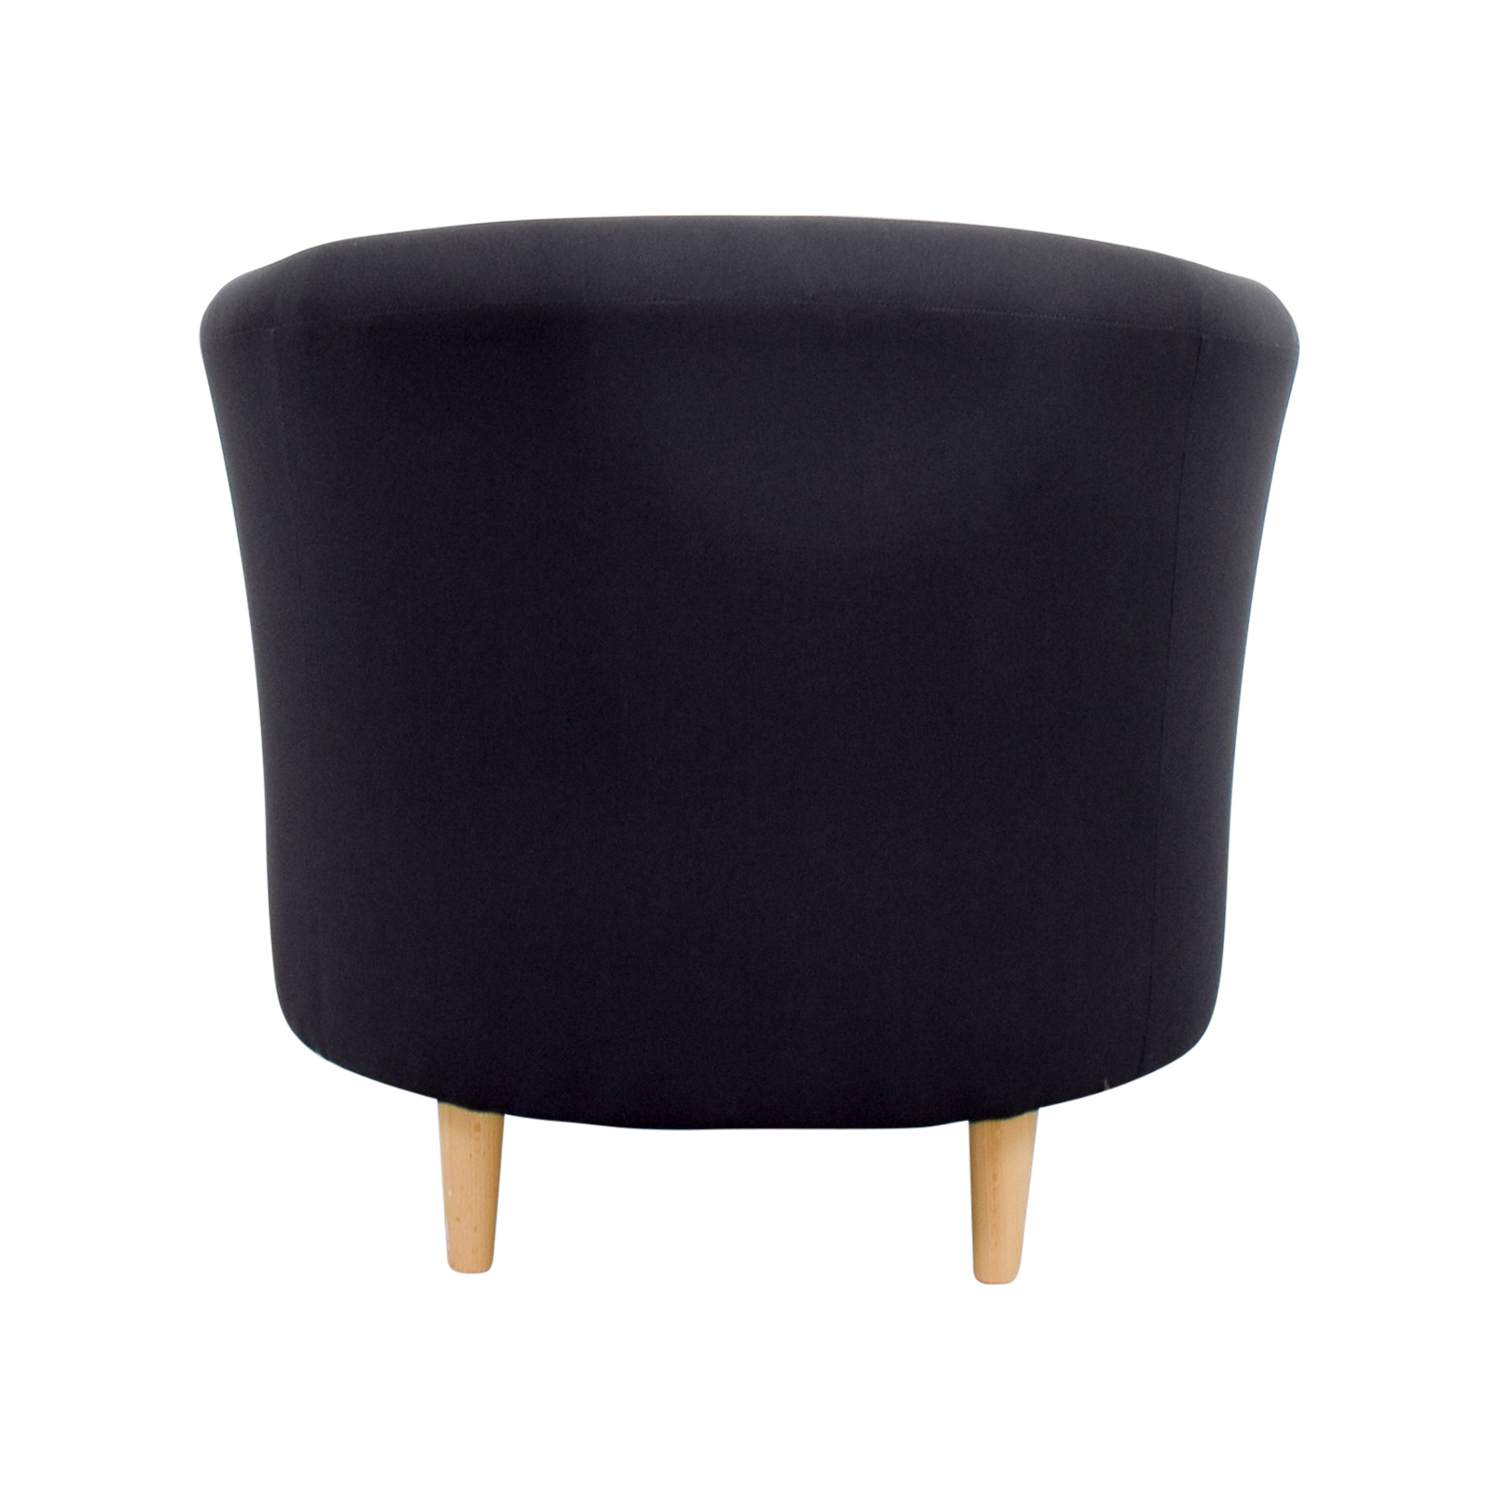 40% OFF - IKEA IKEA Tullsta Armchair / Chairs